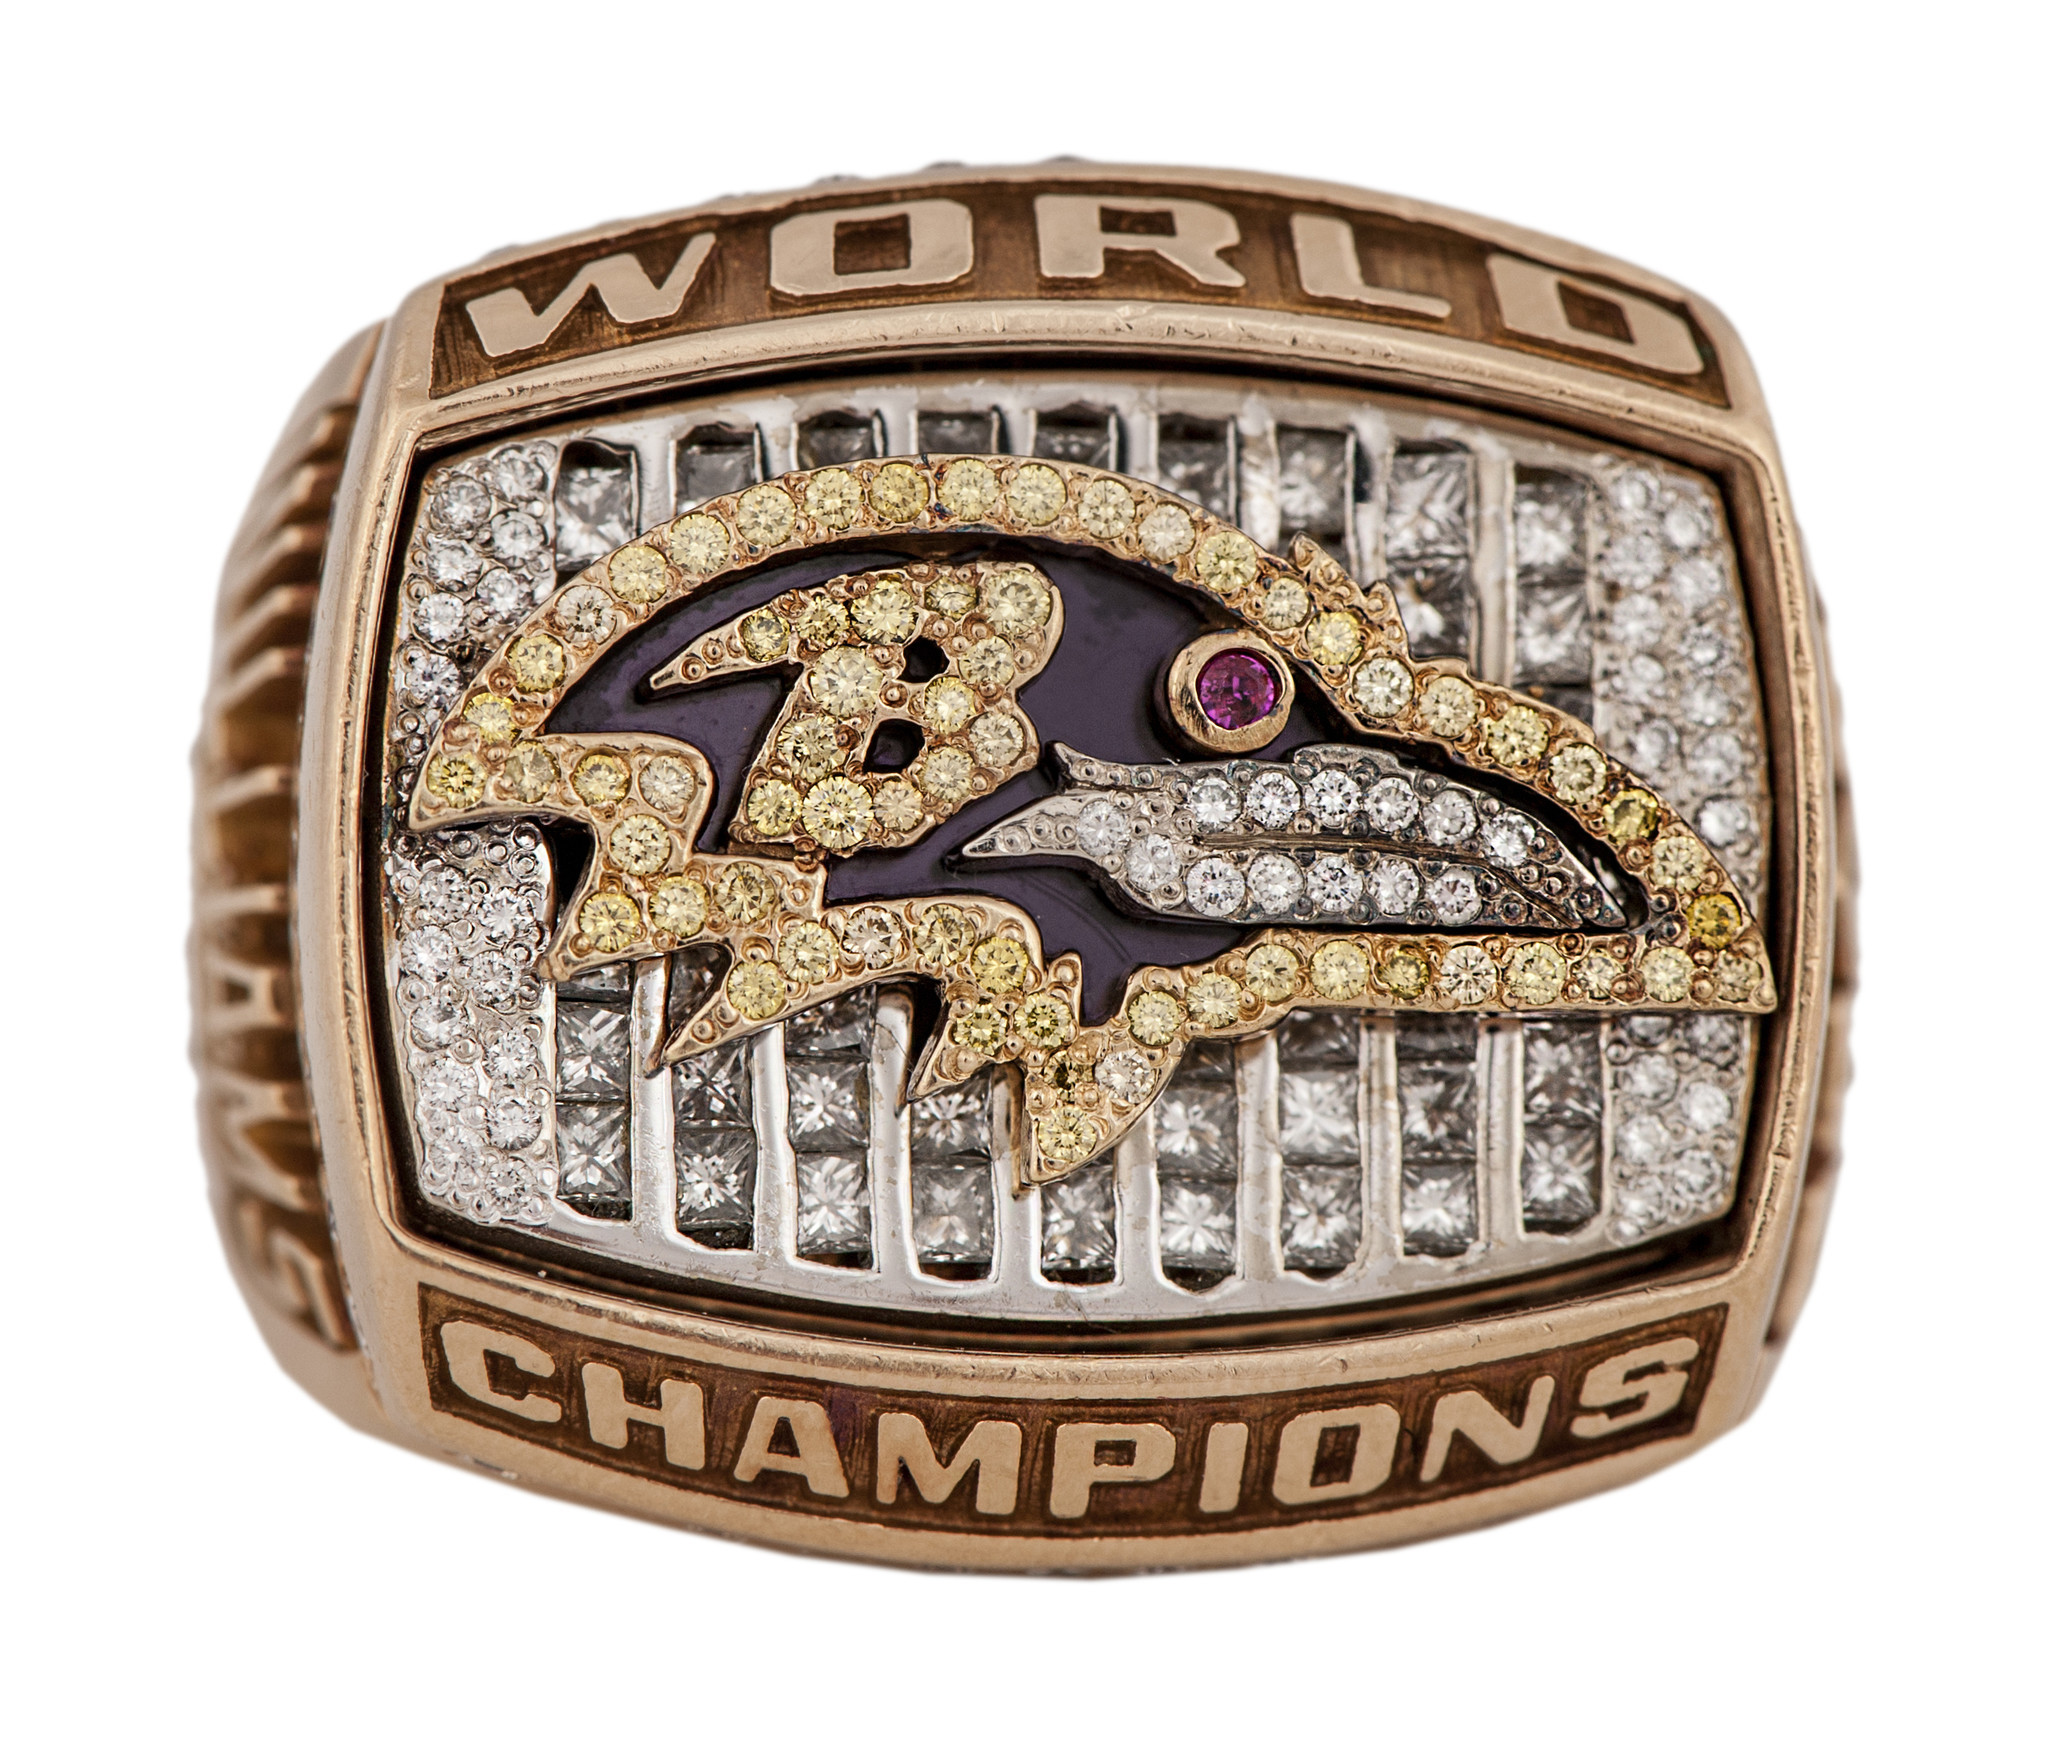 bowl championship superbowl fun pin to them facts rings nfl and date about all the some from super